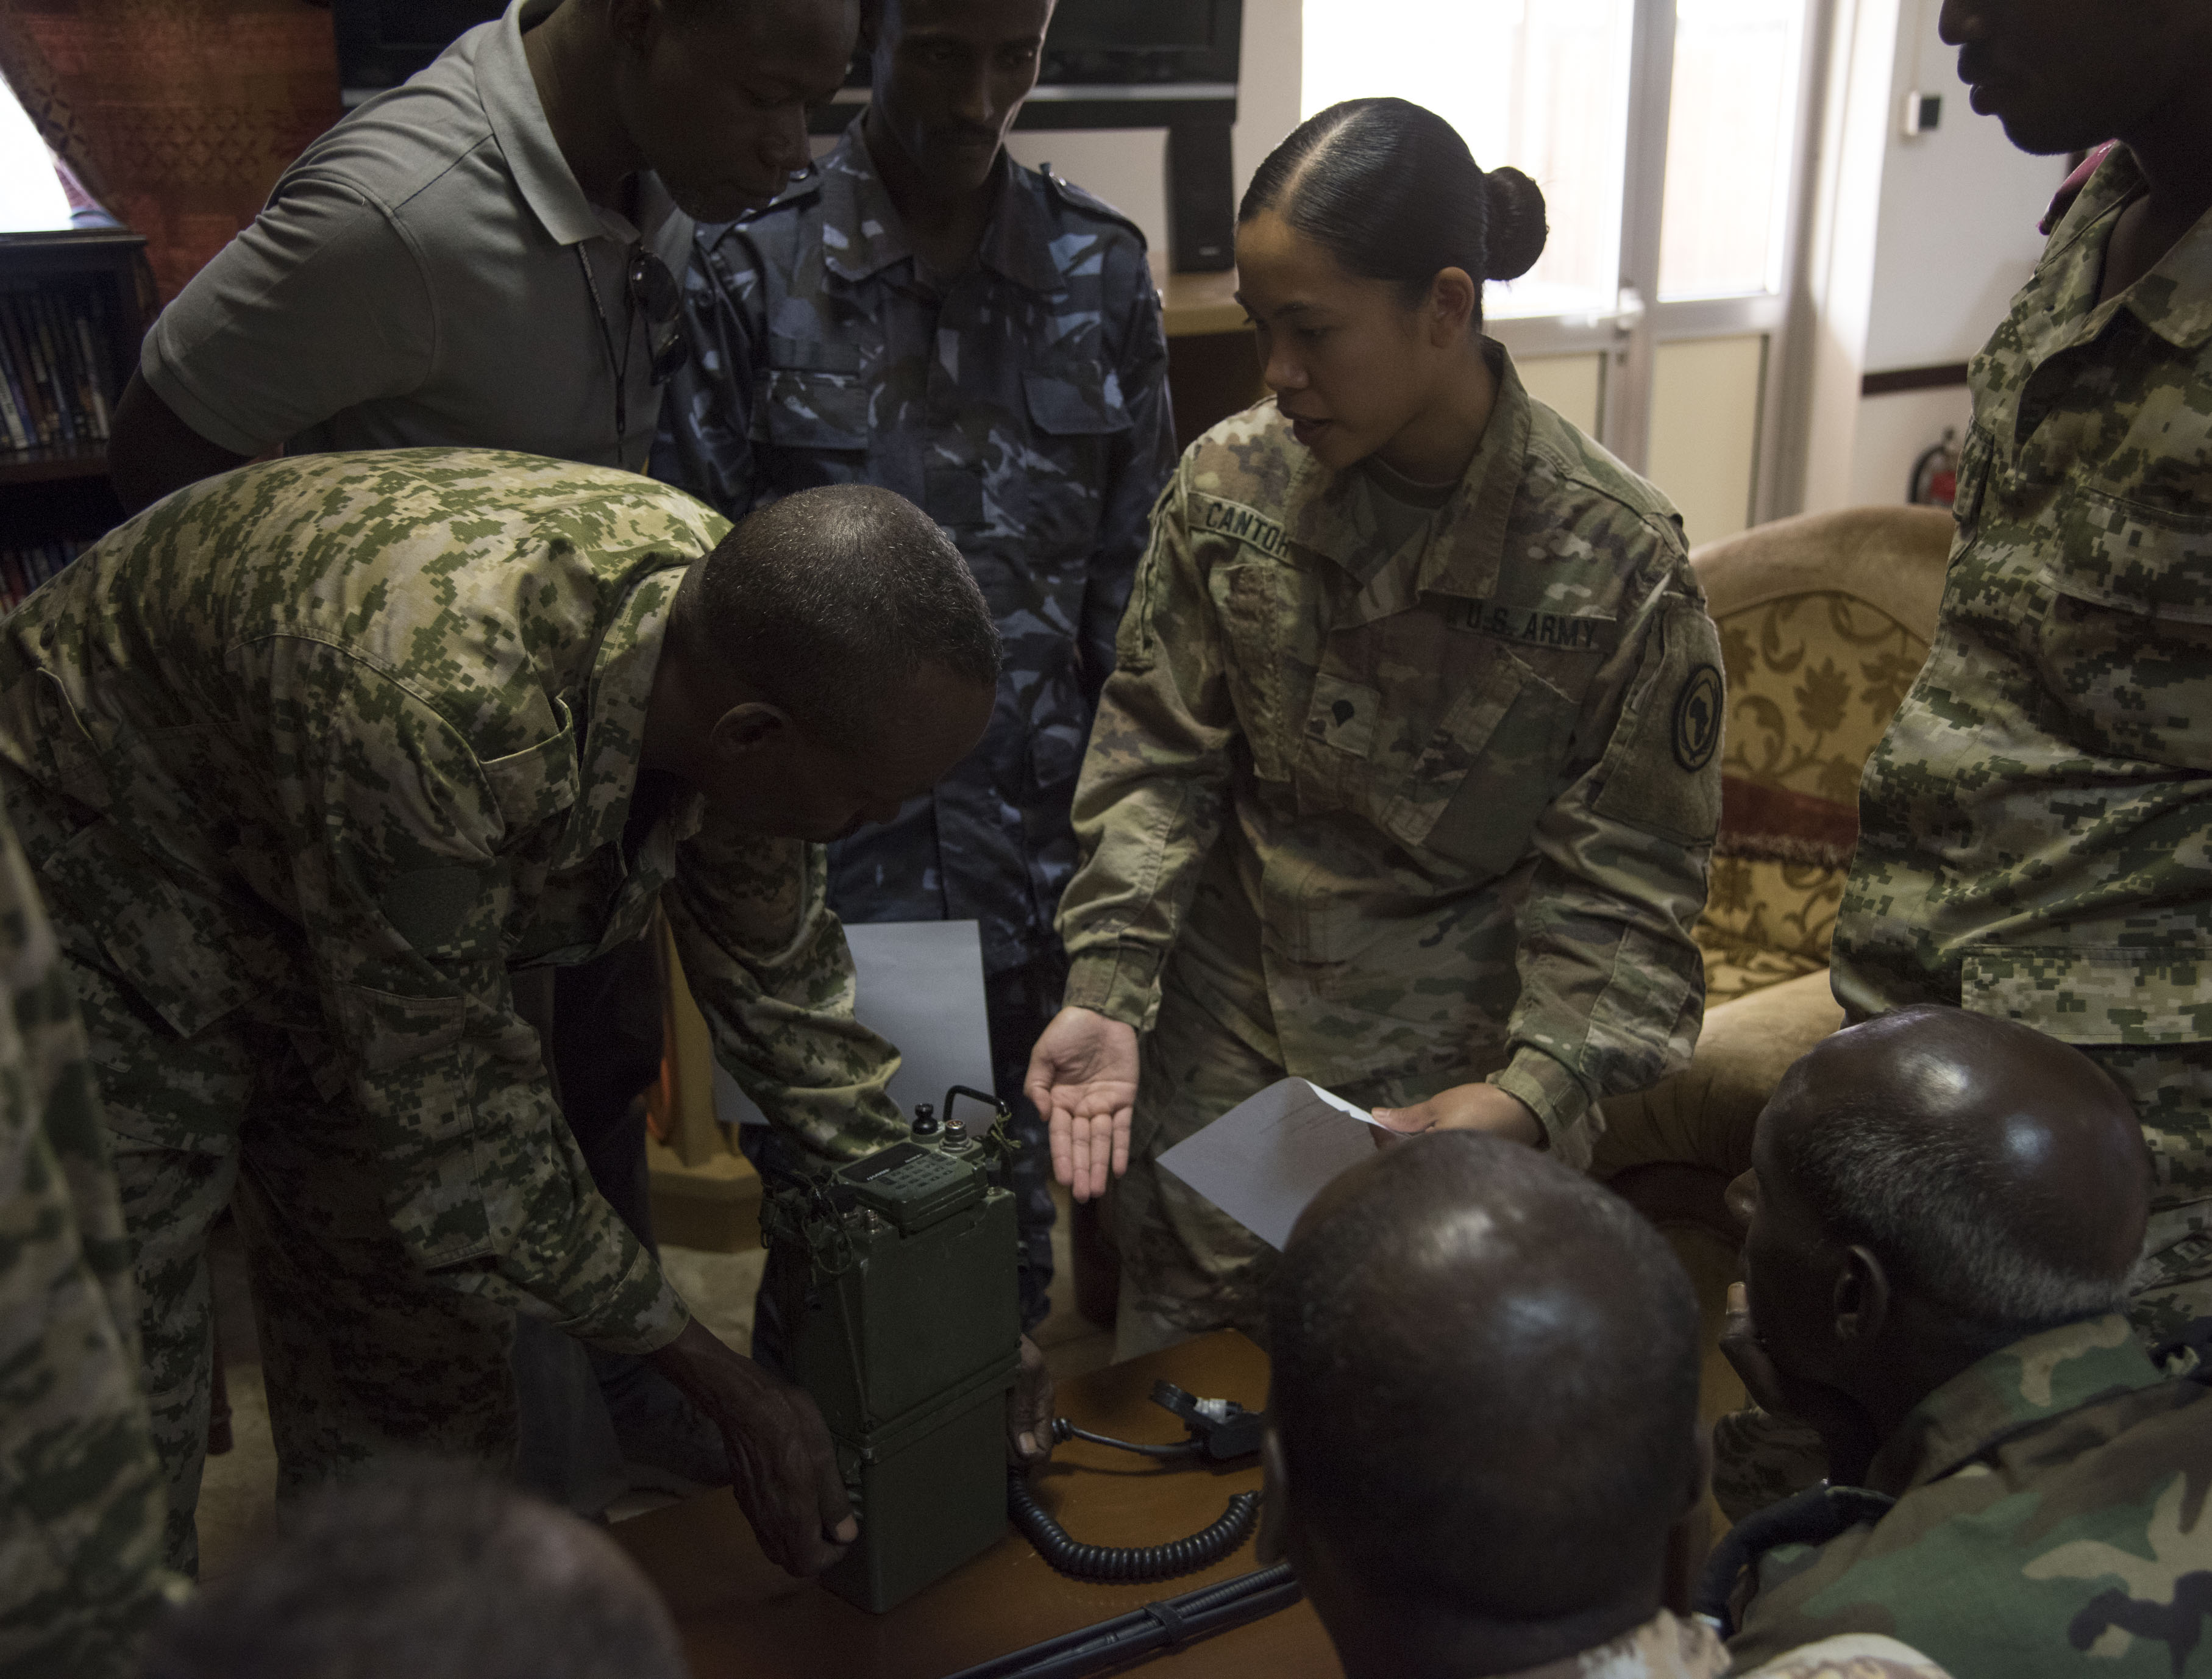 U.S. Army Spc. Christinejoy Cantor instructs Djiboutian military members on radio usage during a Tactical Communications class as part of a Joint Corporals Course hosted by Combined Joint Task Force – Horn of Africa at Camp Lemonnier, Jan. 11, 2018. The Joint Corporals Course is designed to provide junior service members with the knowledge and skills necessary to assume leadership roles of greater responsibility as a non-commissioned officer, as well as strengthen bonds between participating militaries. (U.S. Air National Guard photo by Staff Sgt. Allyson L. Manners)